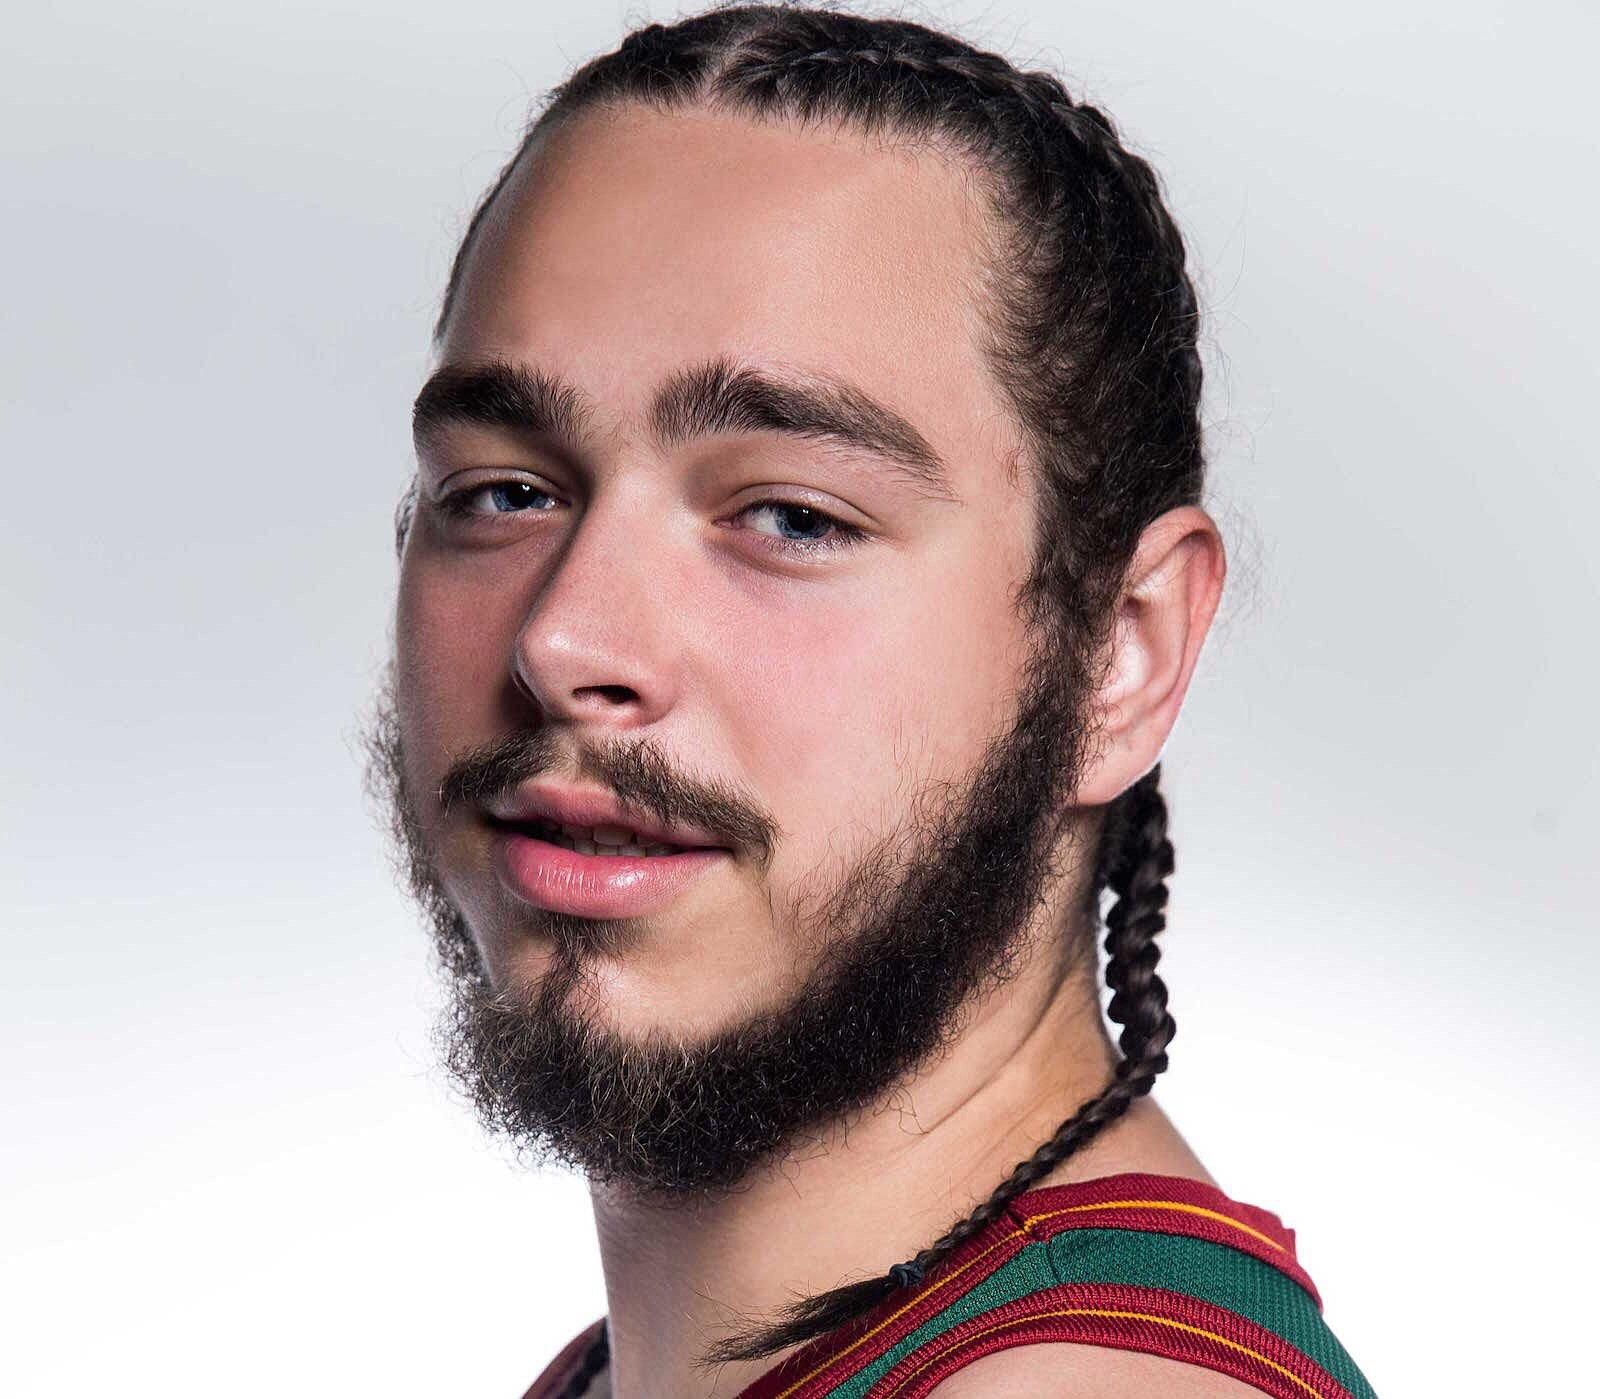 PsBattle Post Malone without tattoos Post malone, Post